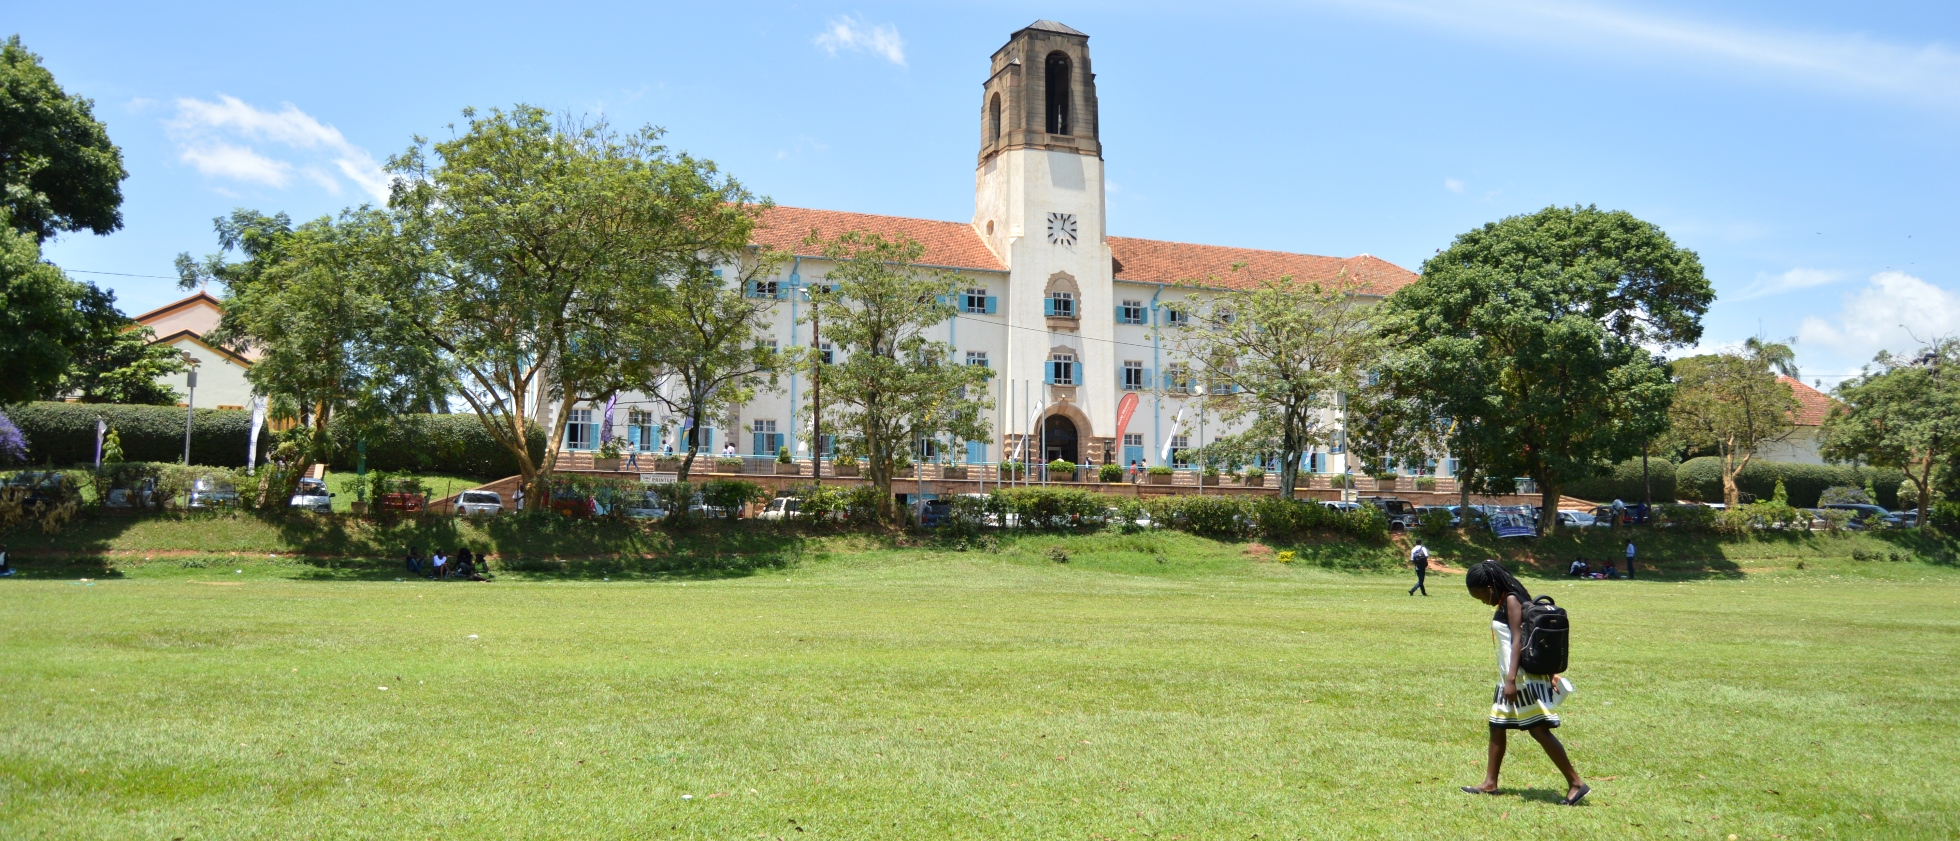 images/Places/Makerere-University2.jpg